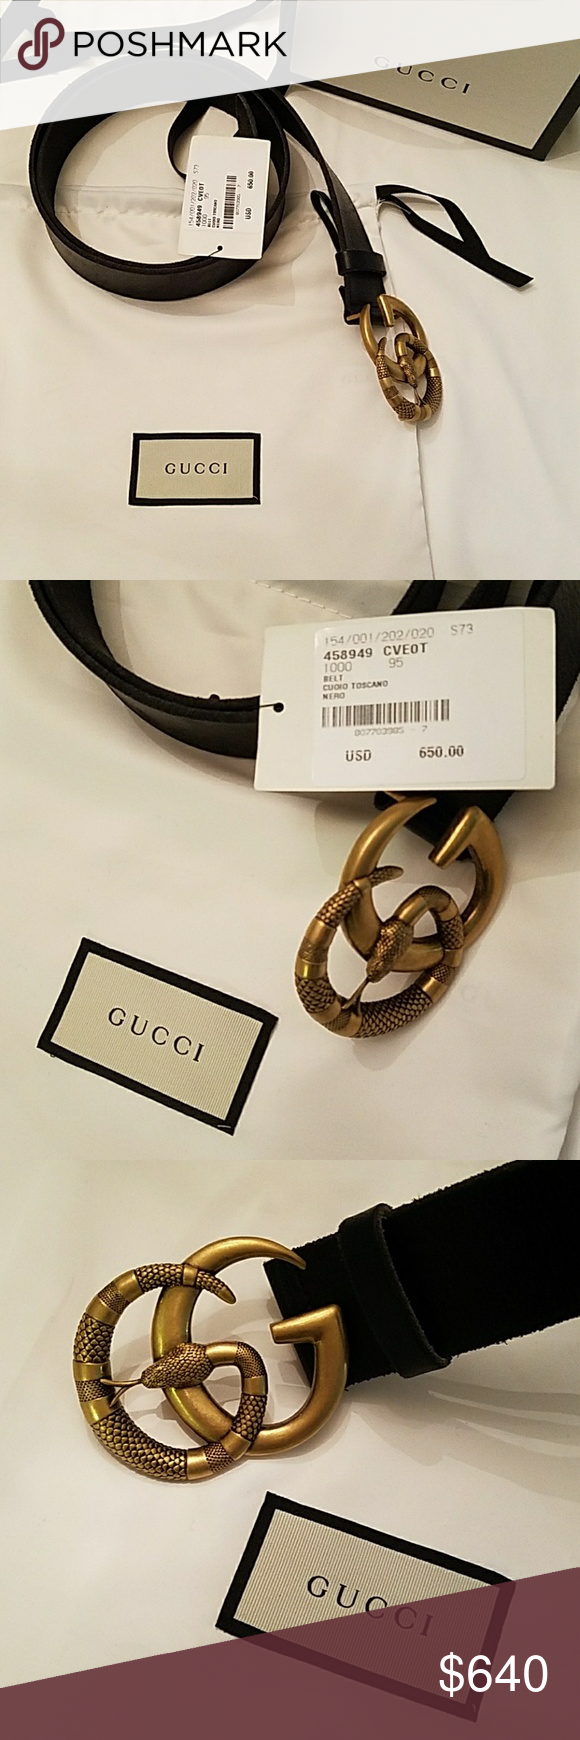 76748d4729a GUCCI Snake Belt 95 GG Gold Marmont Gucci Leather GG Double G Snake Belt  The snake